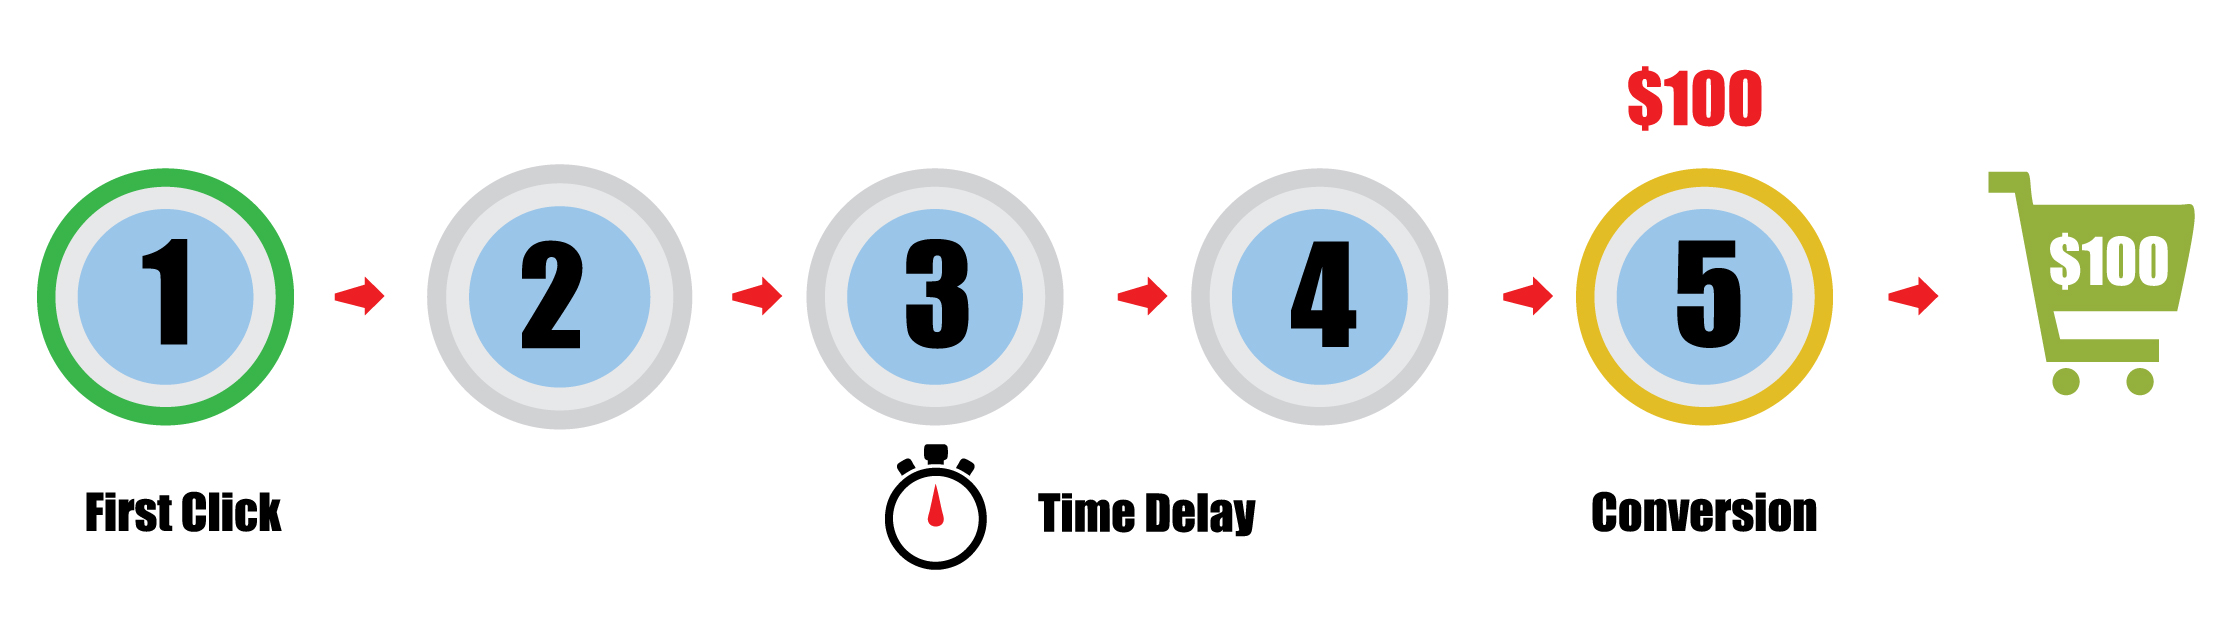 Hybrid Attribution with Time-Delay